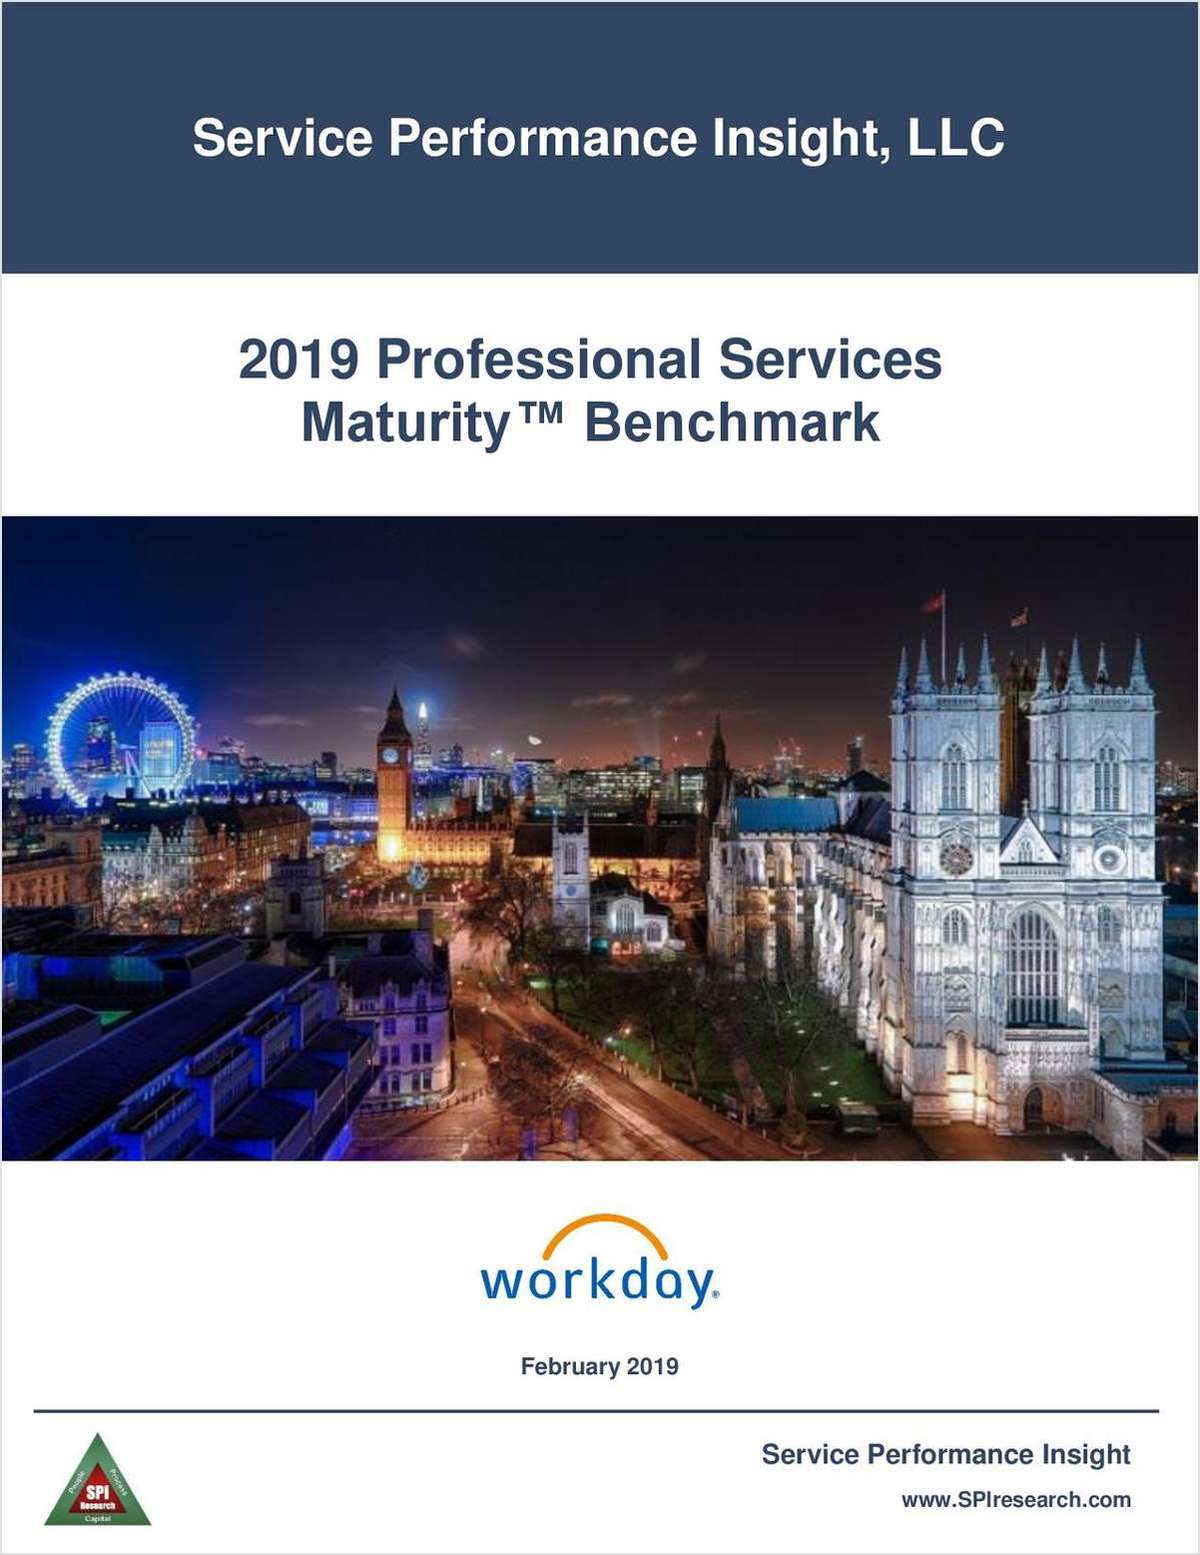 SPI Research PSA Maturity Benchmark 2019 report